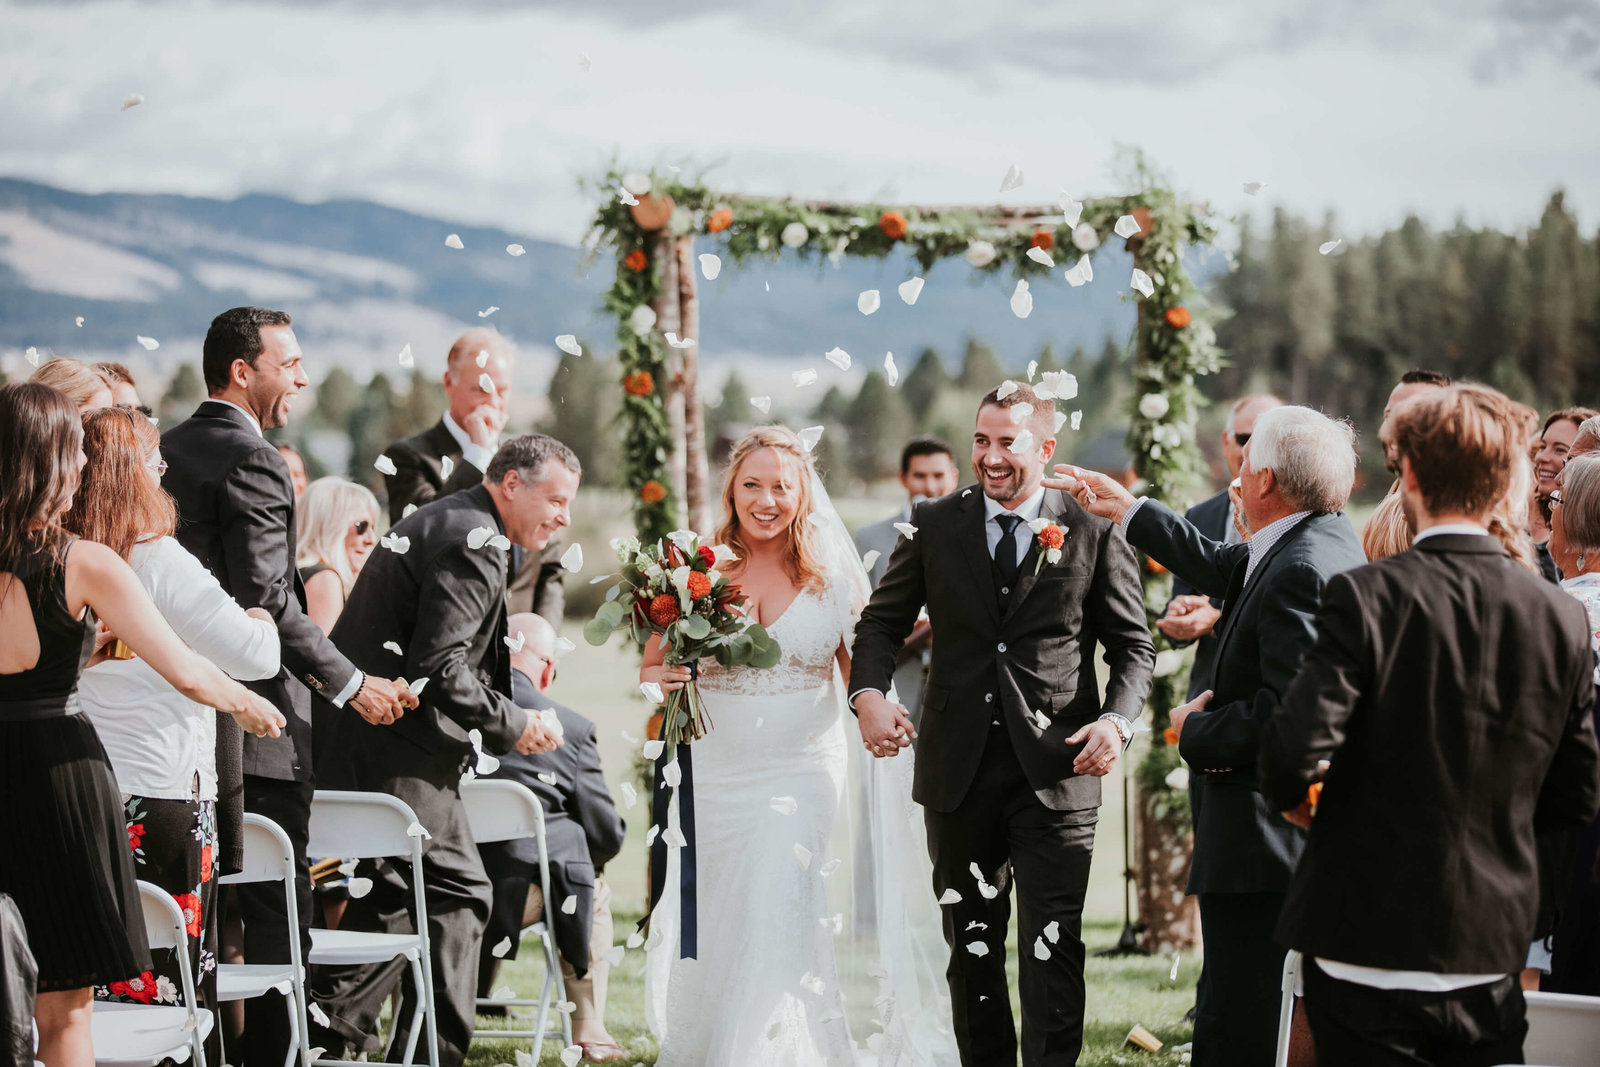 destination-wedding-idaho-seattle-wedding-photographer-adina-preston-photography-226